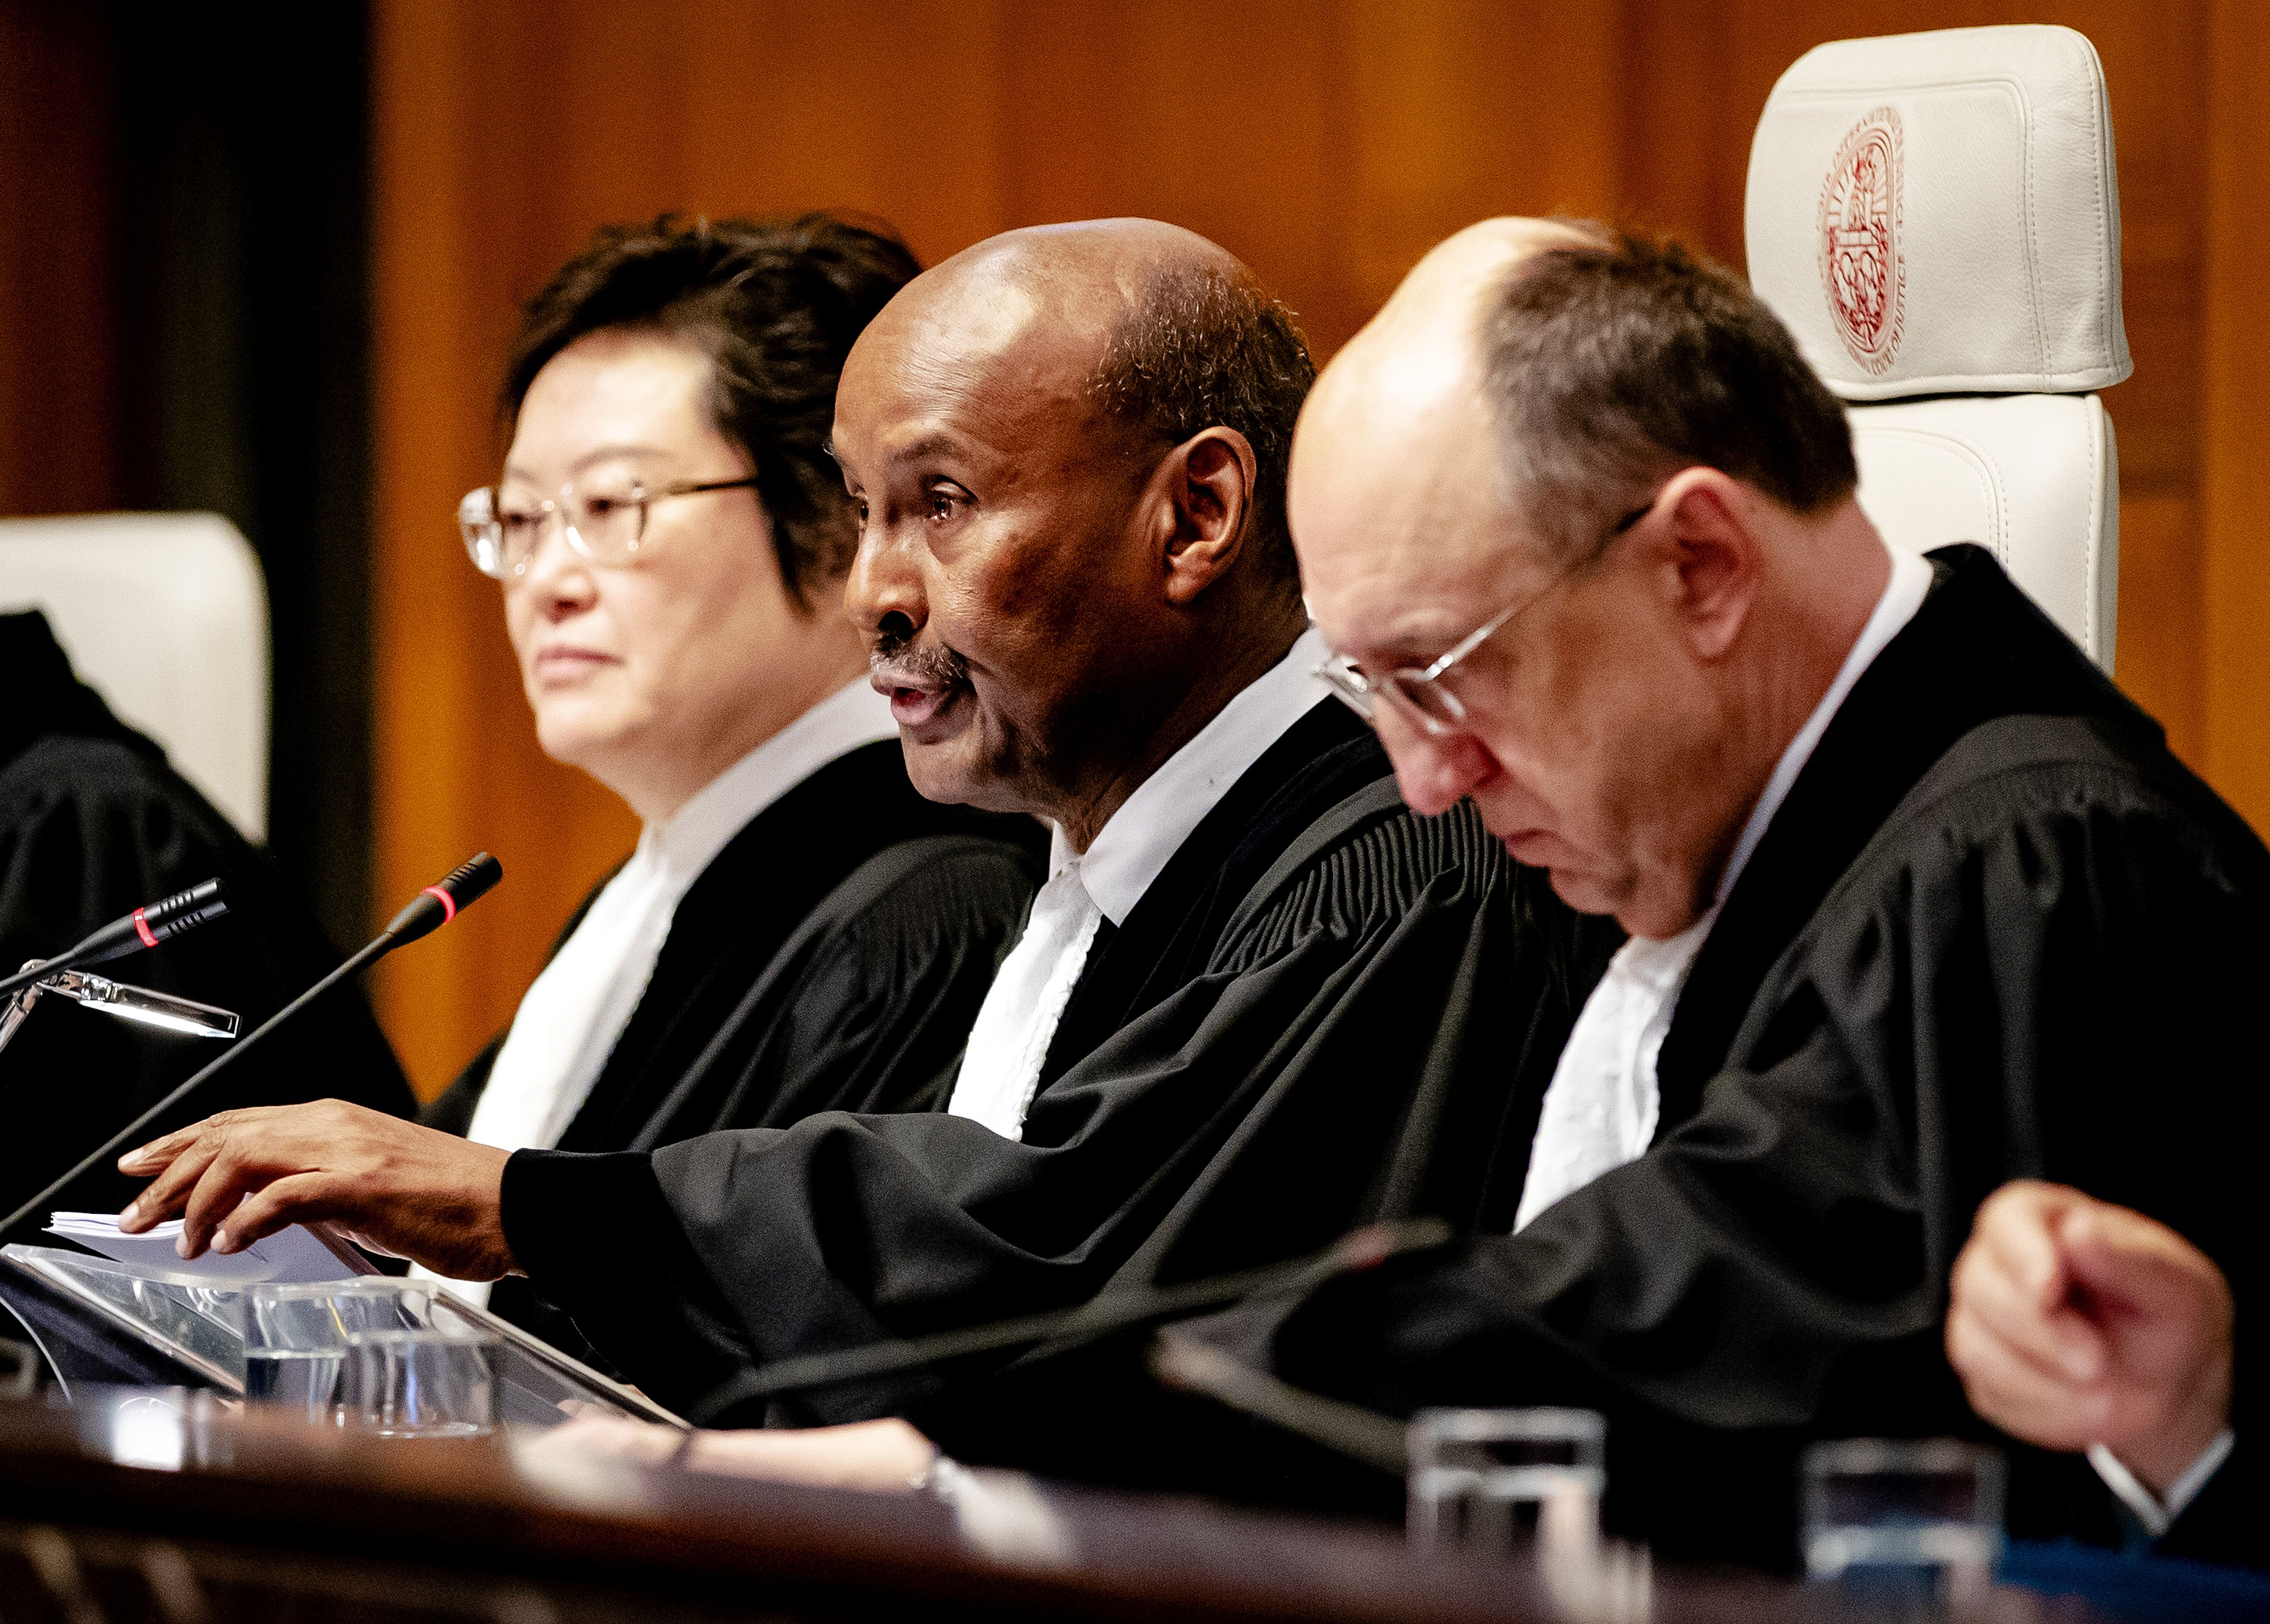 The president of the International Court of Justice, Abdulqawi Ahmed Yusuf (C) speaks during the ruling of the International Court of Justice in The Hague, on January 23, 2020 in the lawsuit filed by The Gambia against Myanmar in which Myanmar is accused of genocide against Rohingya Muslims.